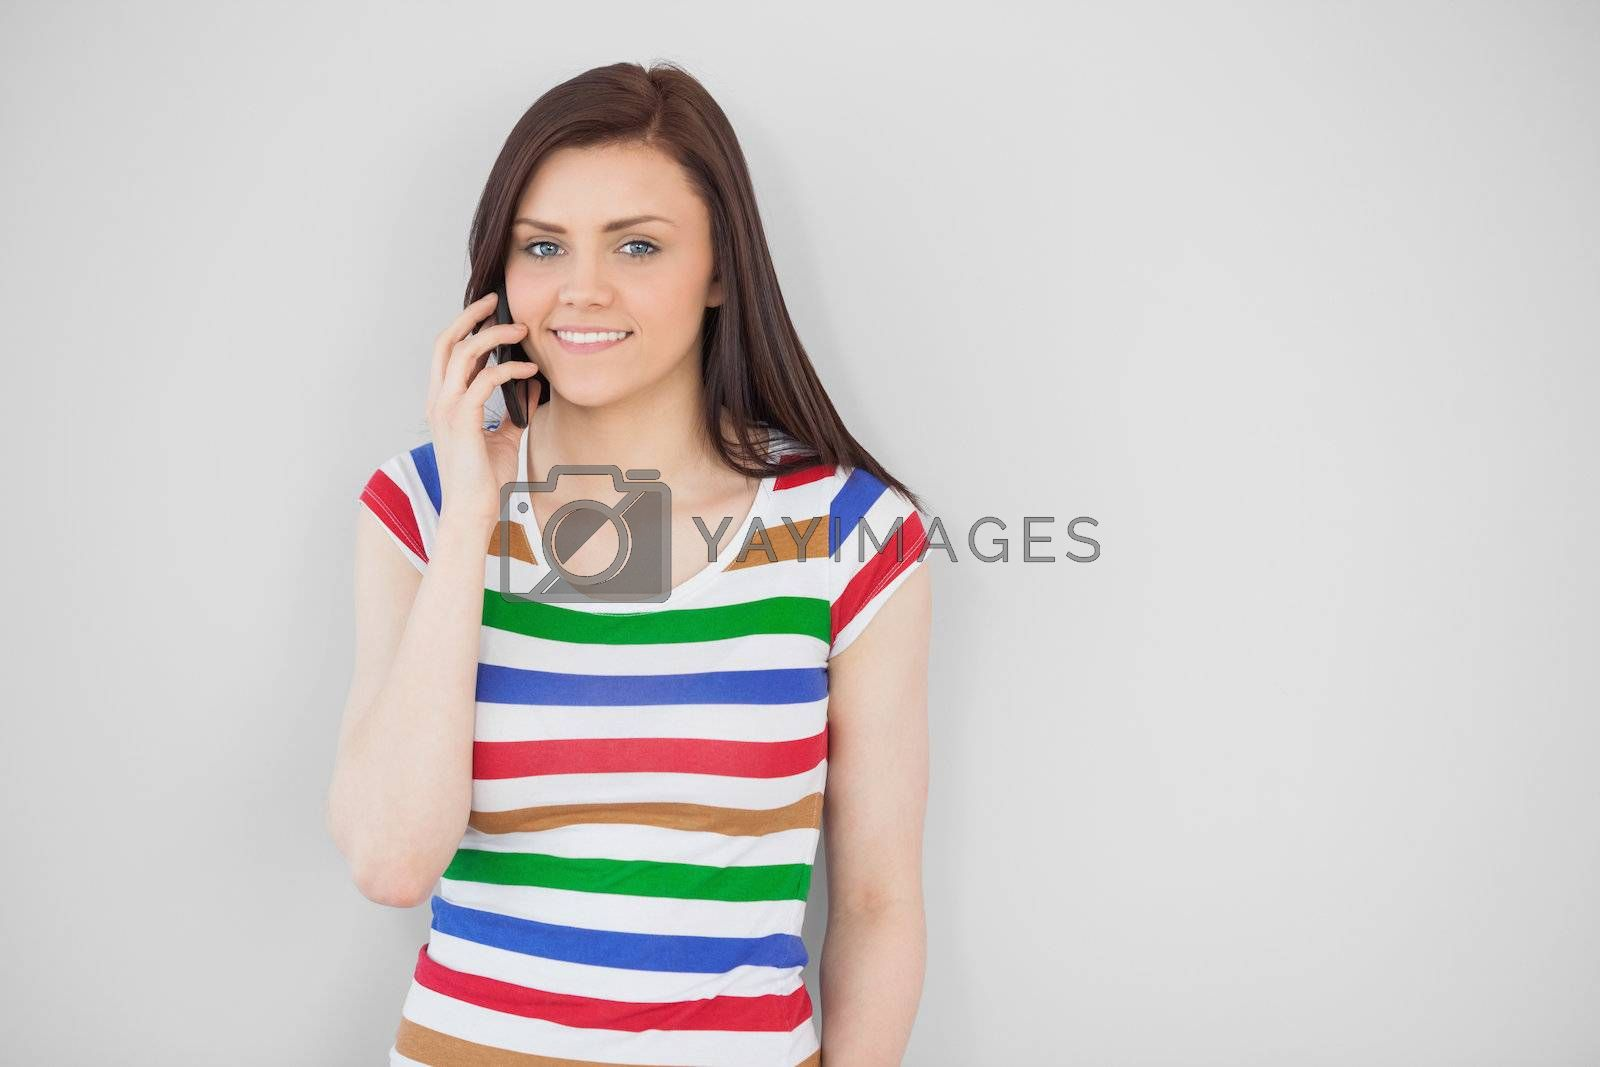 Smiling girl calling with her mobile phone looking at camera by Wavebreakmedia